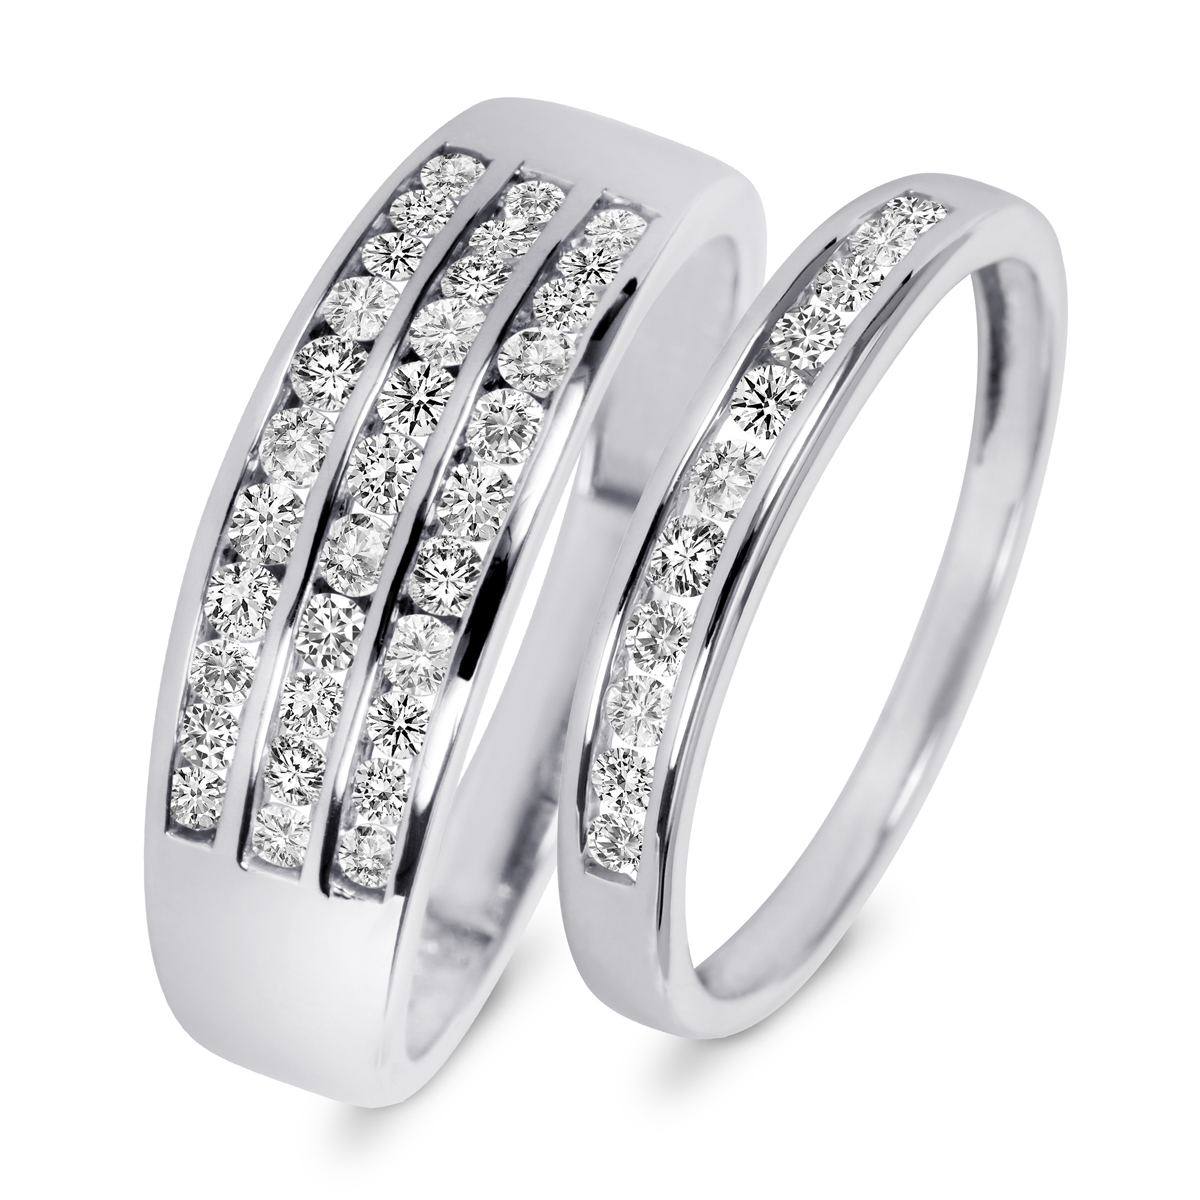 white gold mens wedding band white gold wedding bands http theweddingpress com wp content uploads 12 white gold diamond wedding bands